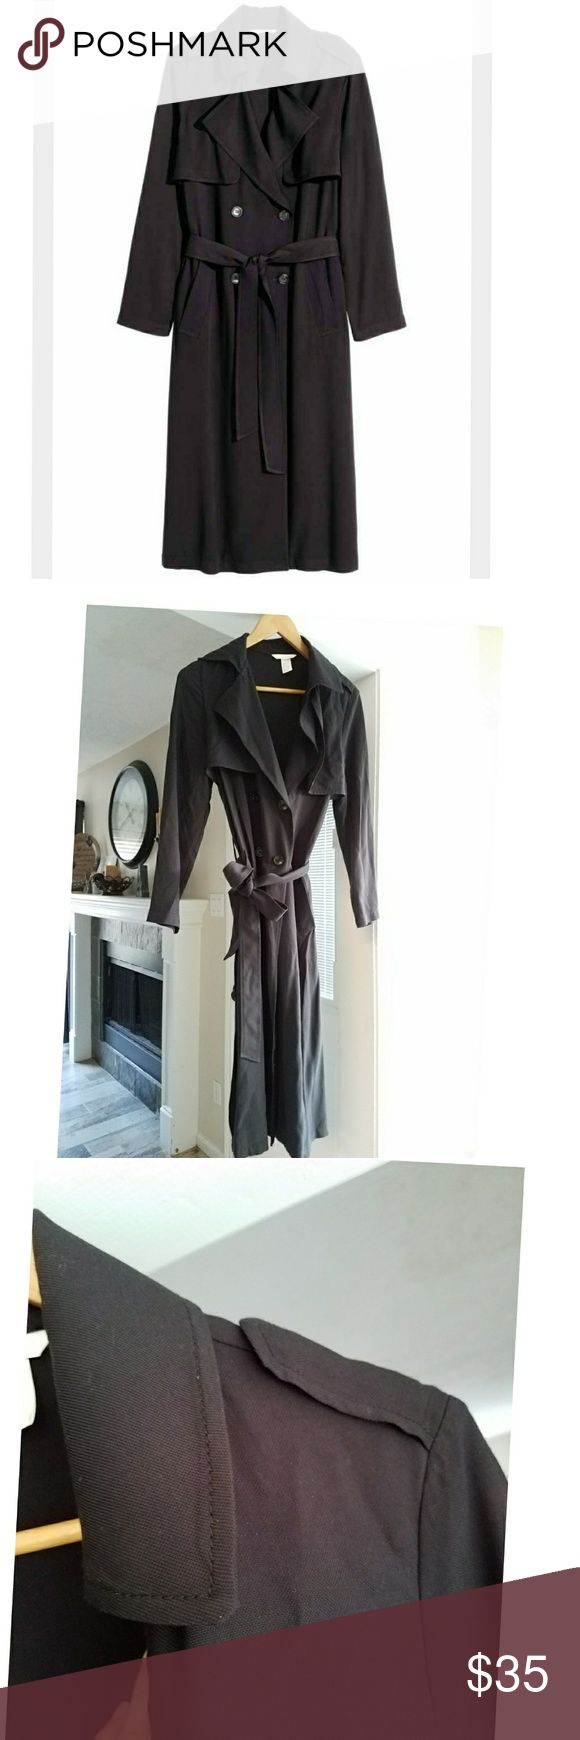 NWOT H&M black trench coat with slits. NWOT H&M black trench coat with slits on both sides. H&M Jackets & Coats